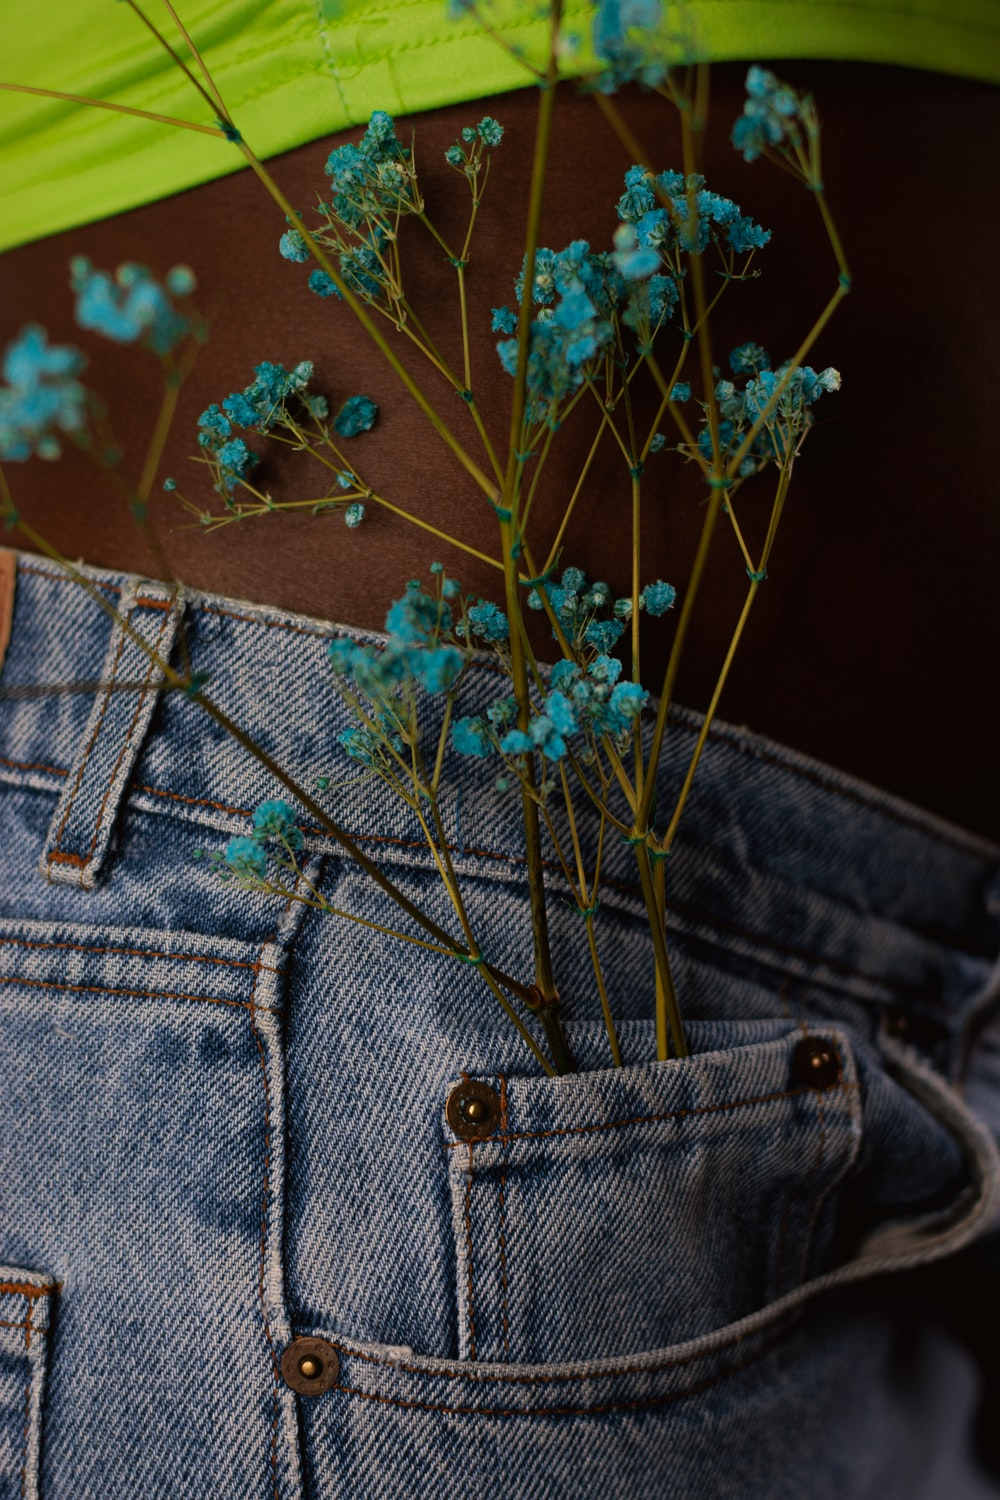 blue denim jeans with green plant